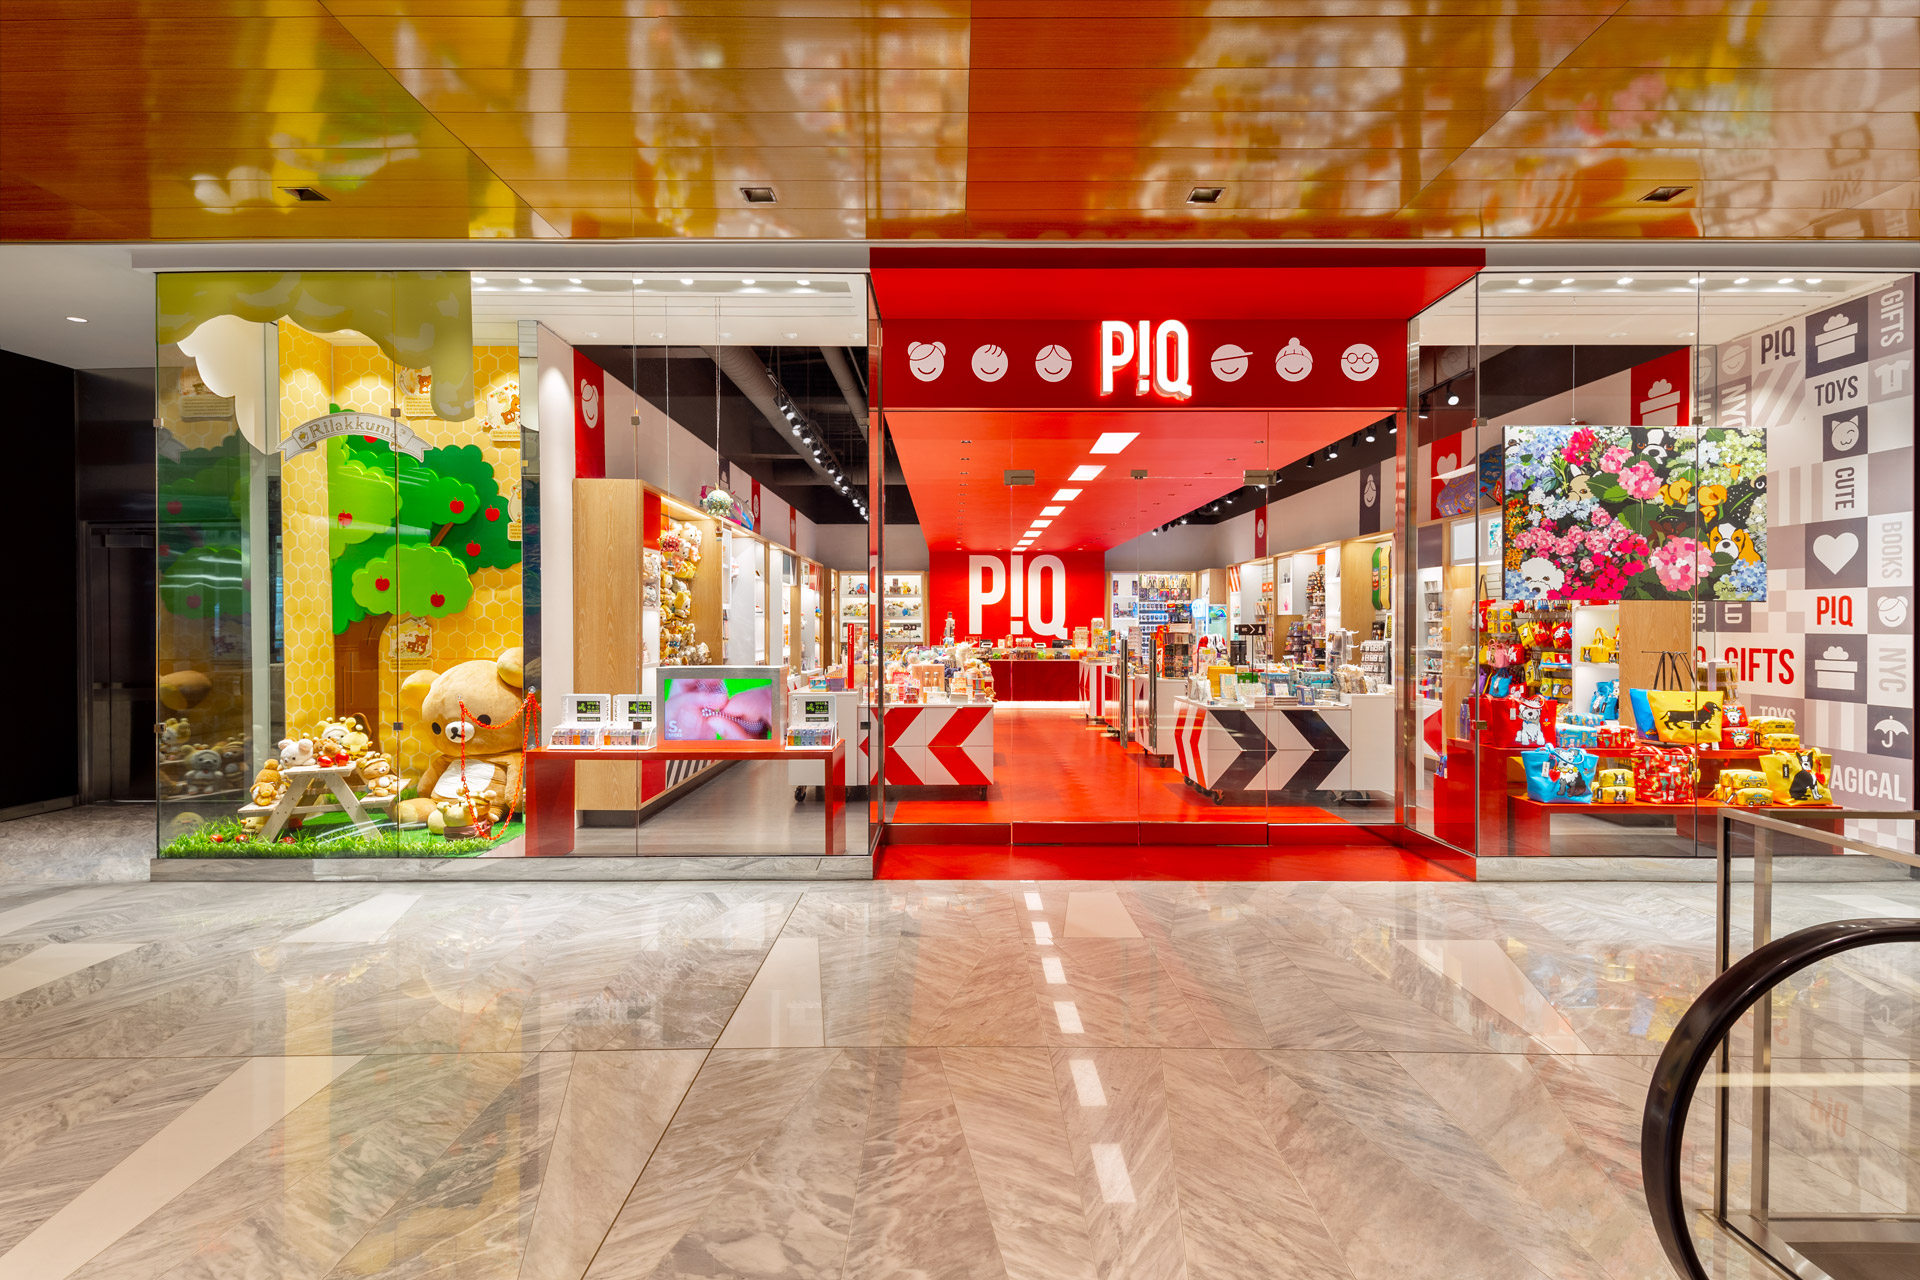 PiQ Hudson Yards retail store